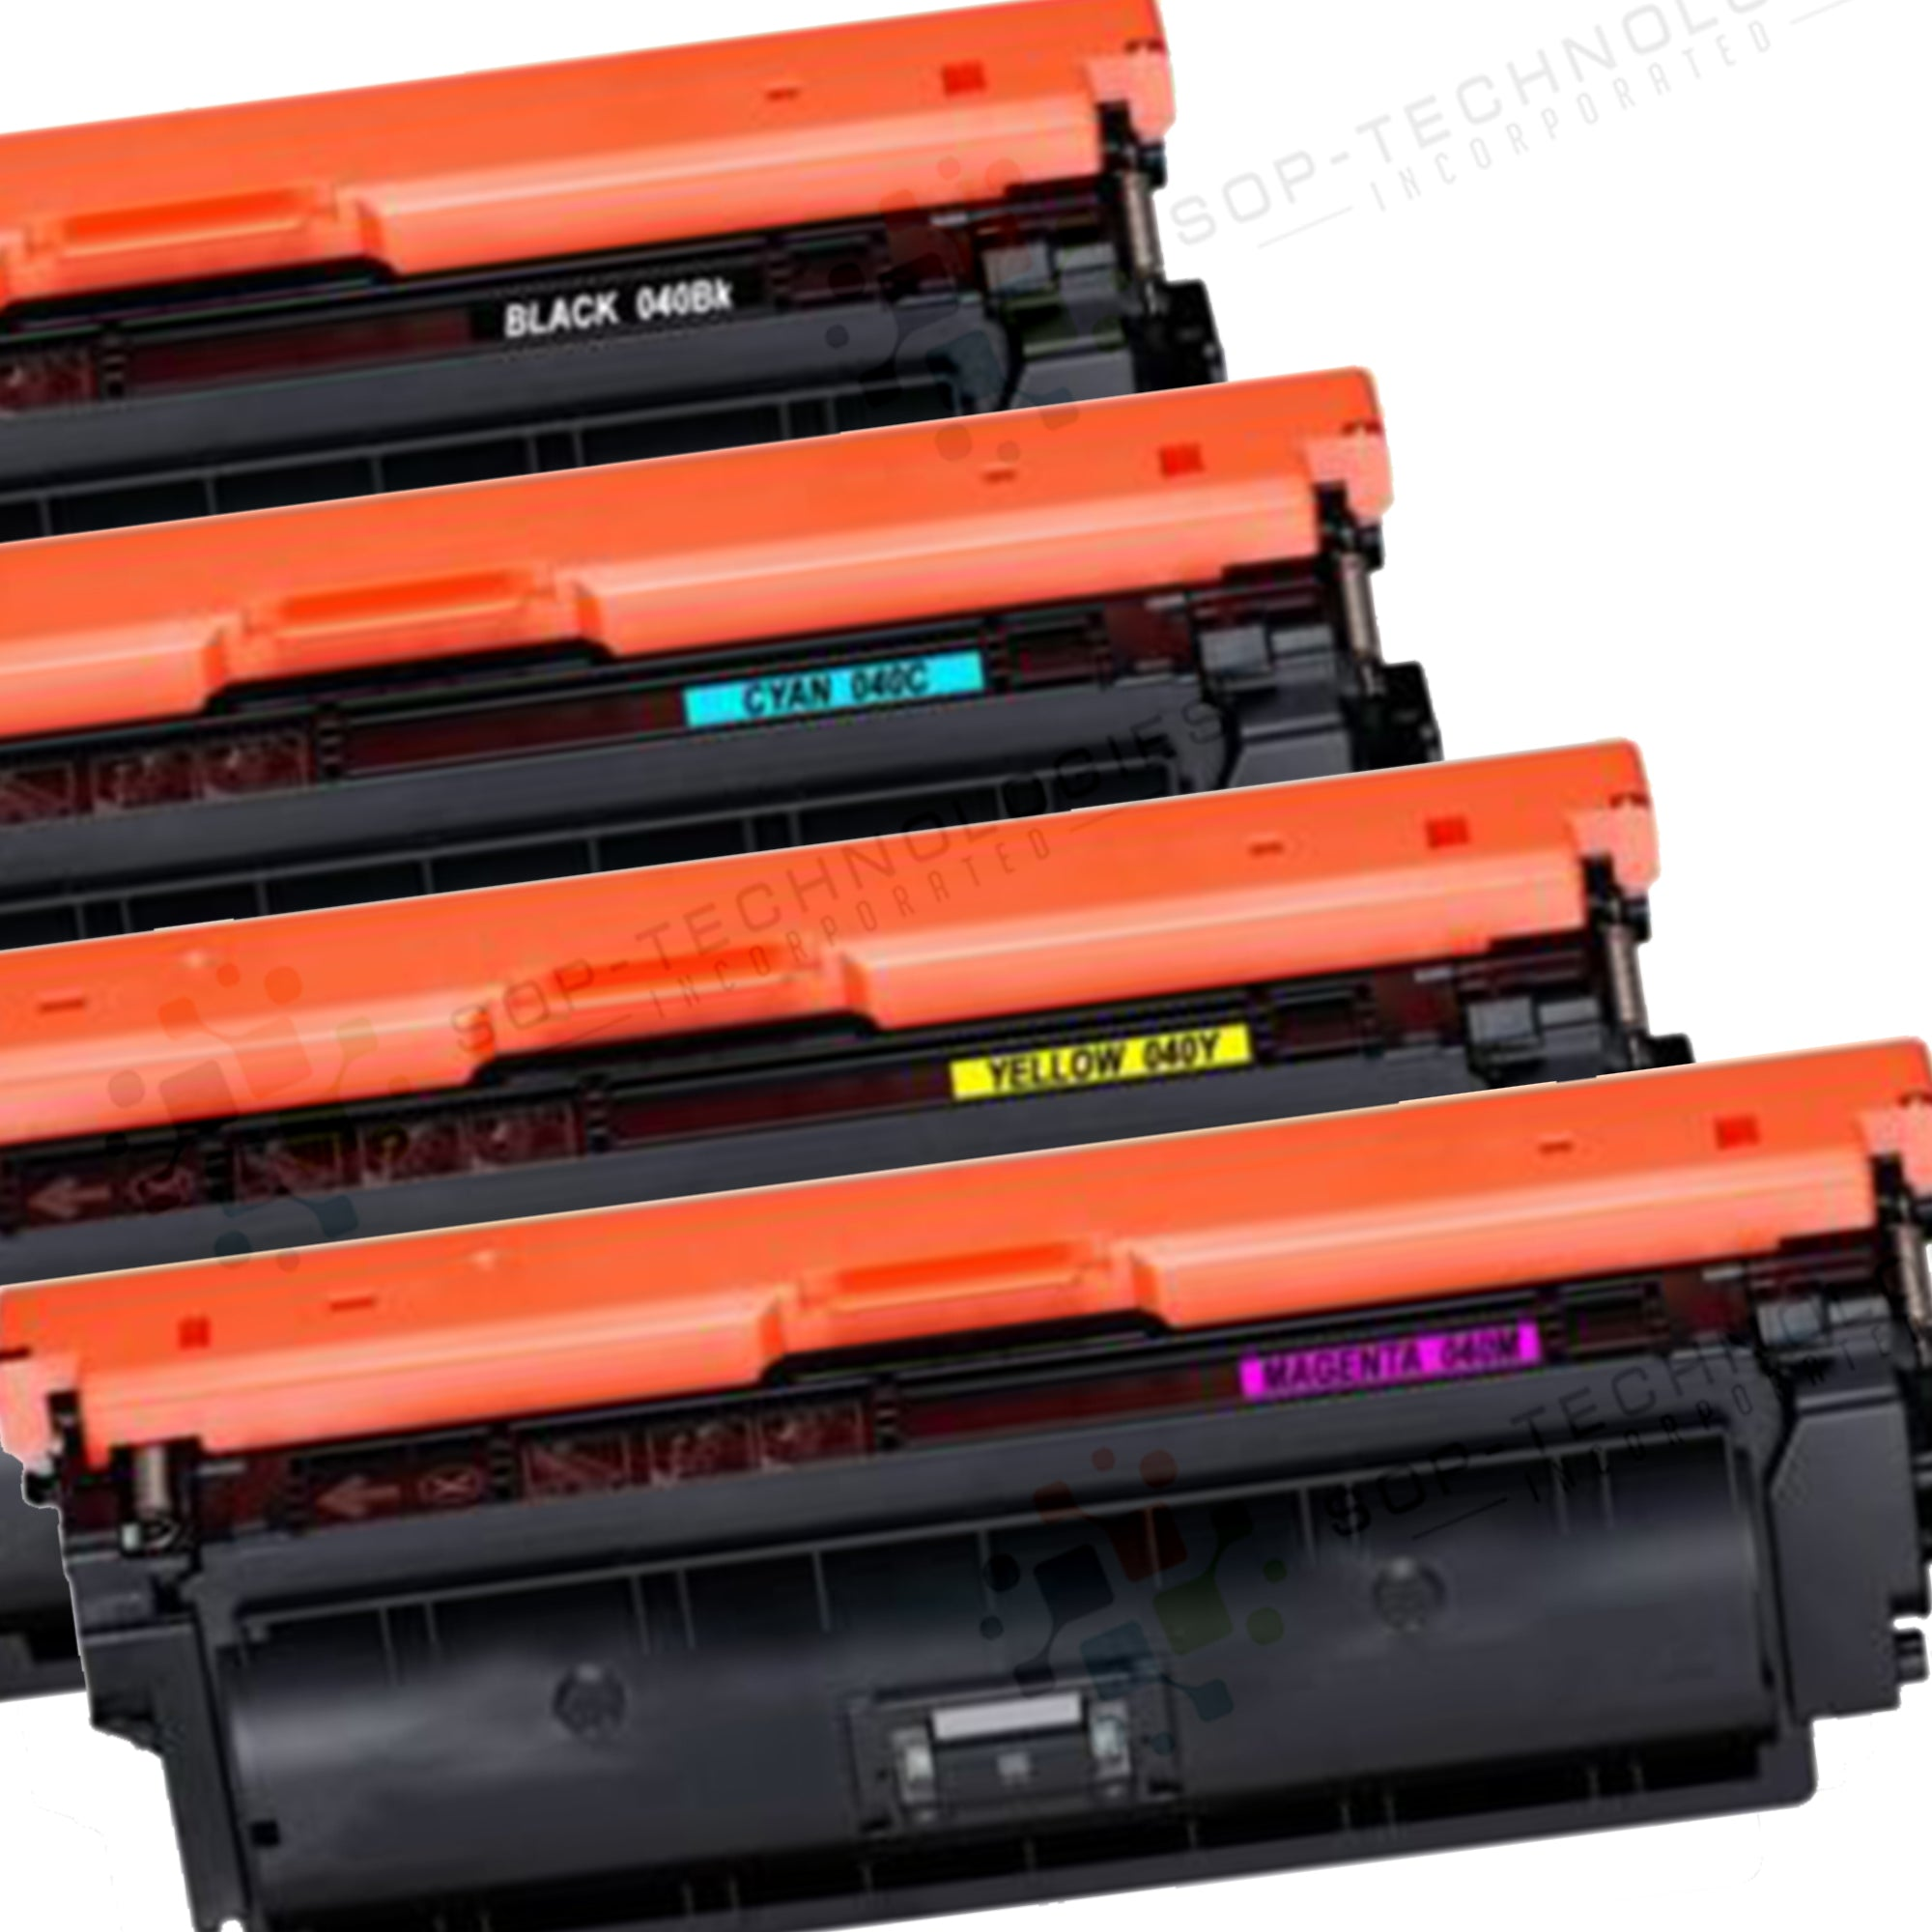 4pk Compatible Toner Cartridge Replacement for Canon Color image CLASS LBP712Cdn - SOP-TECHNOLOGIES, INC.